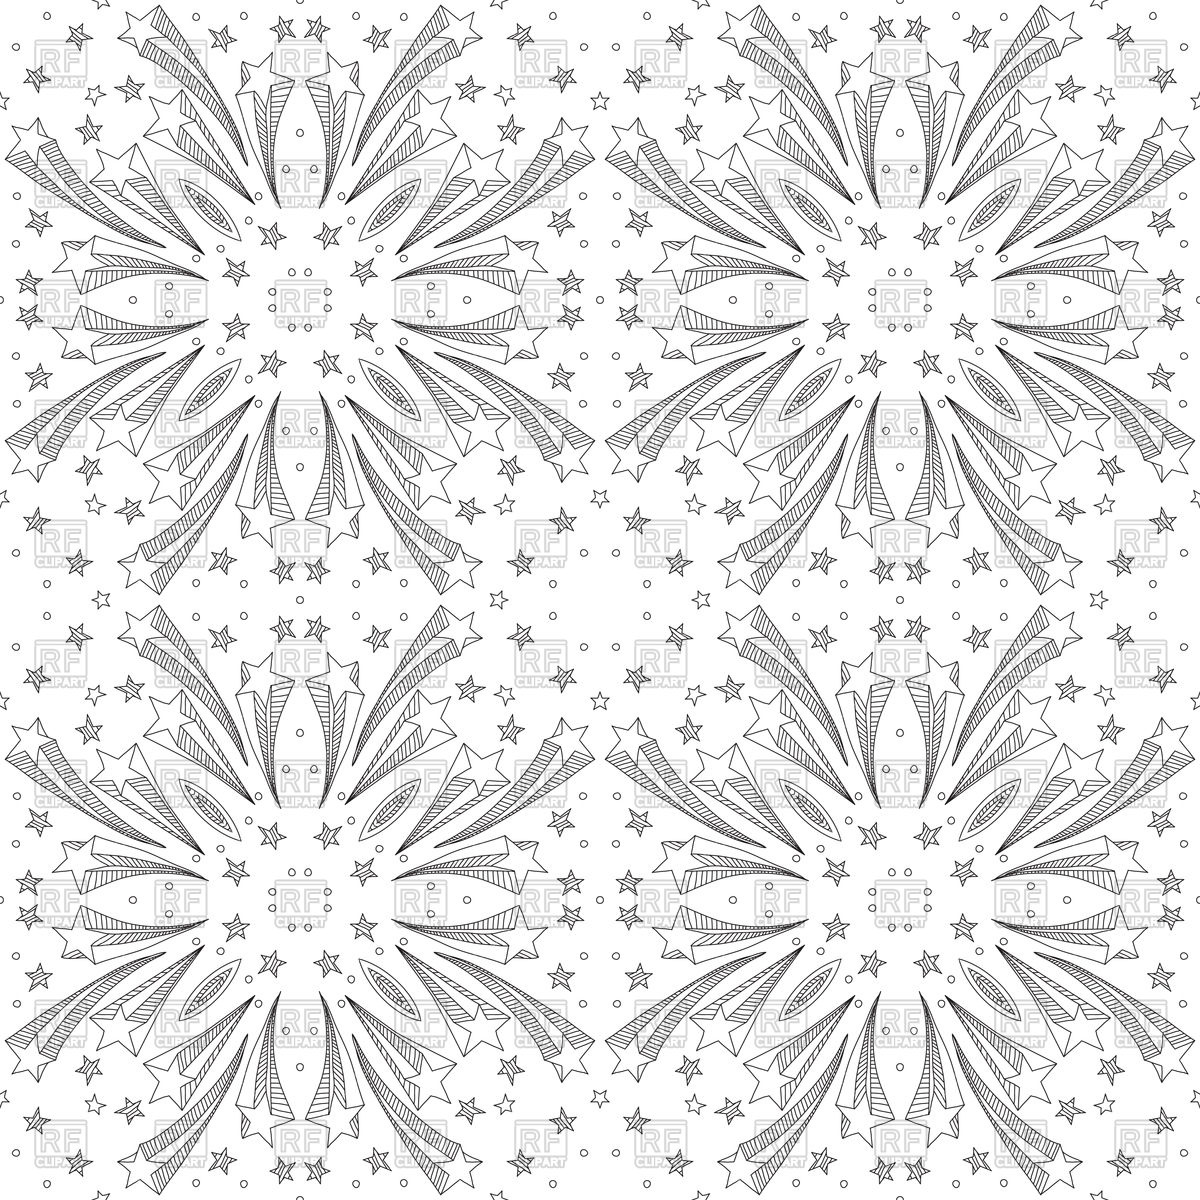 1200x1200 Seamless Pattern Made Of Black Hand Drawn Stars Vector Image